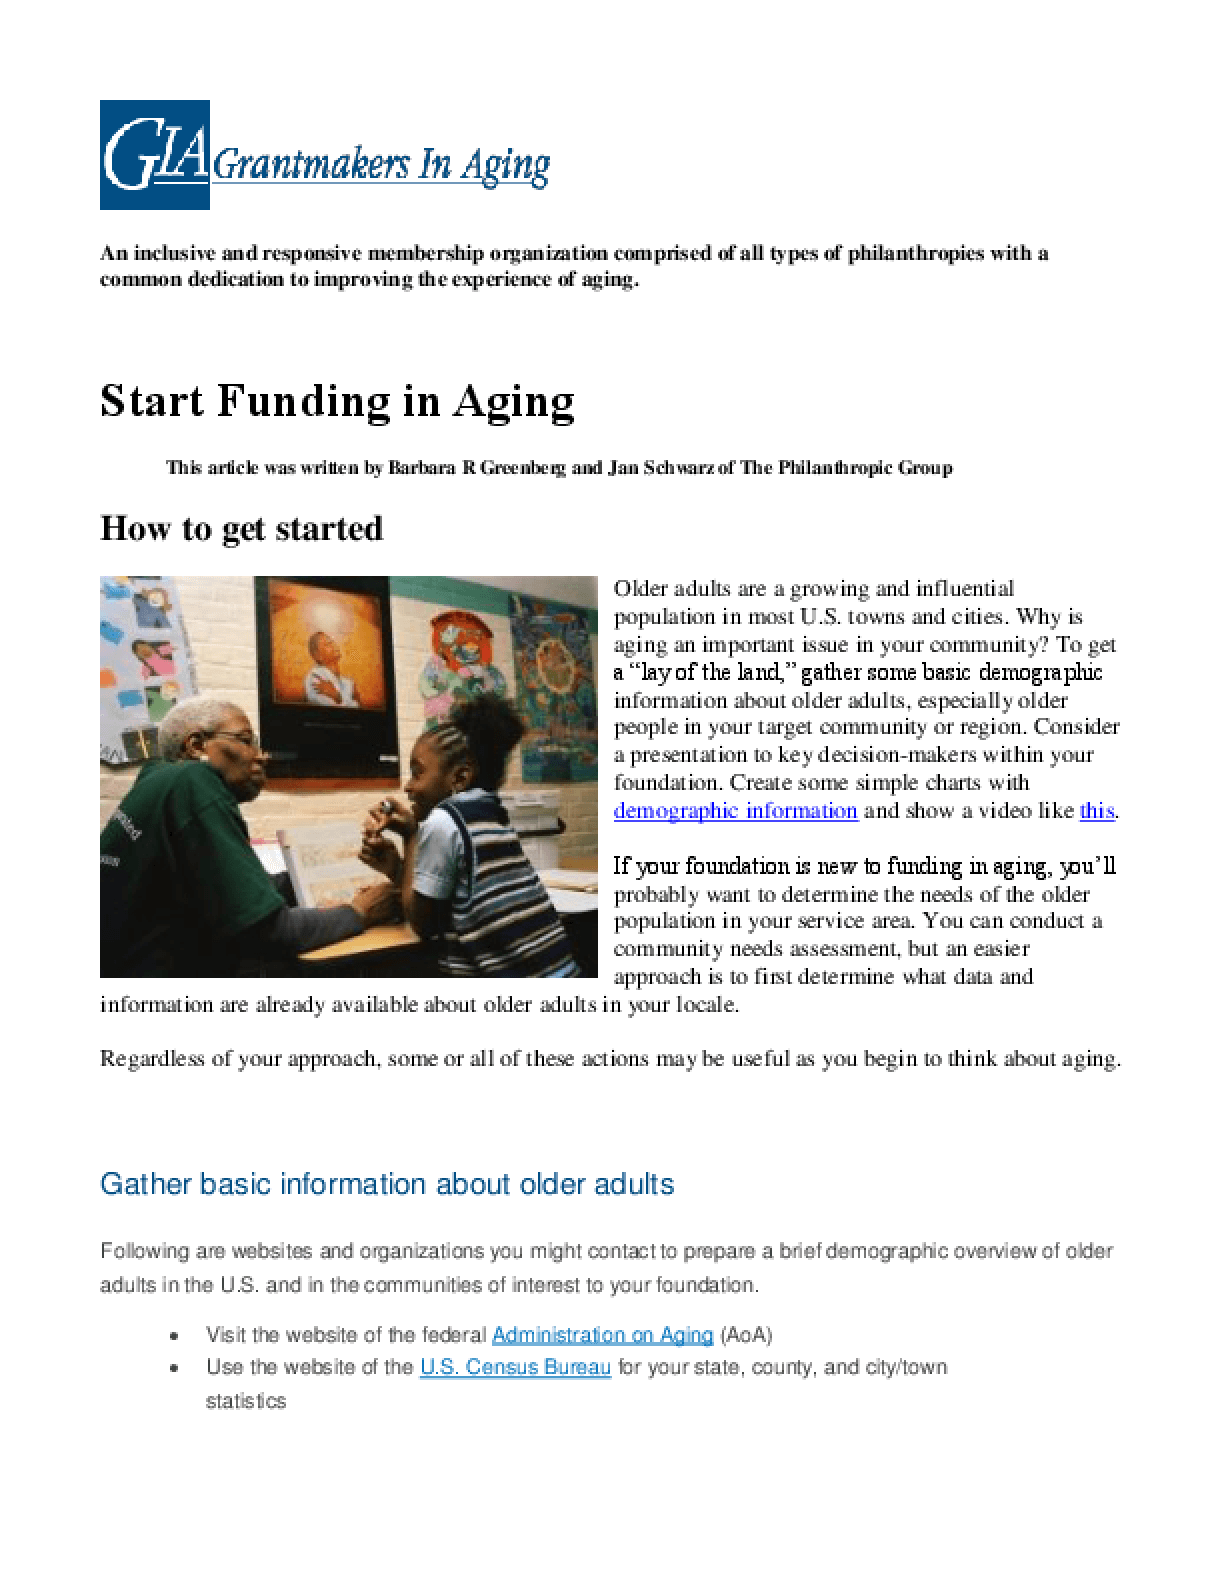 Grants in Aging: How to Get Started